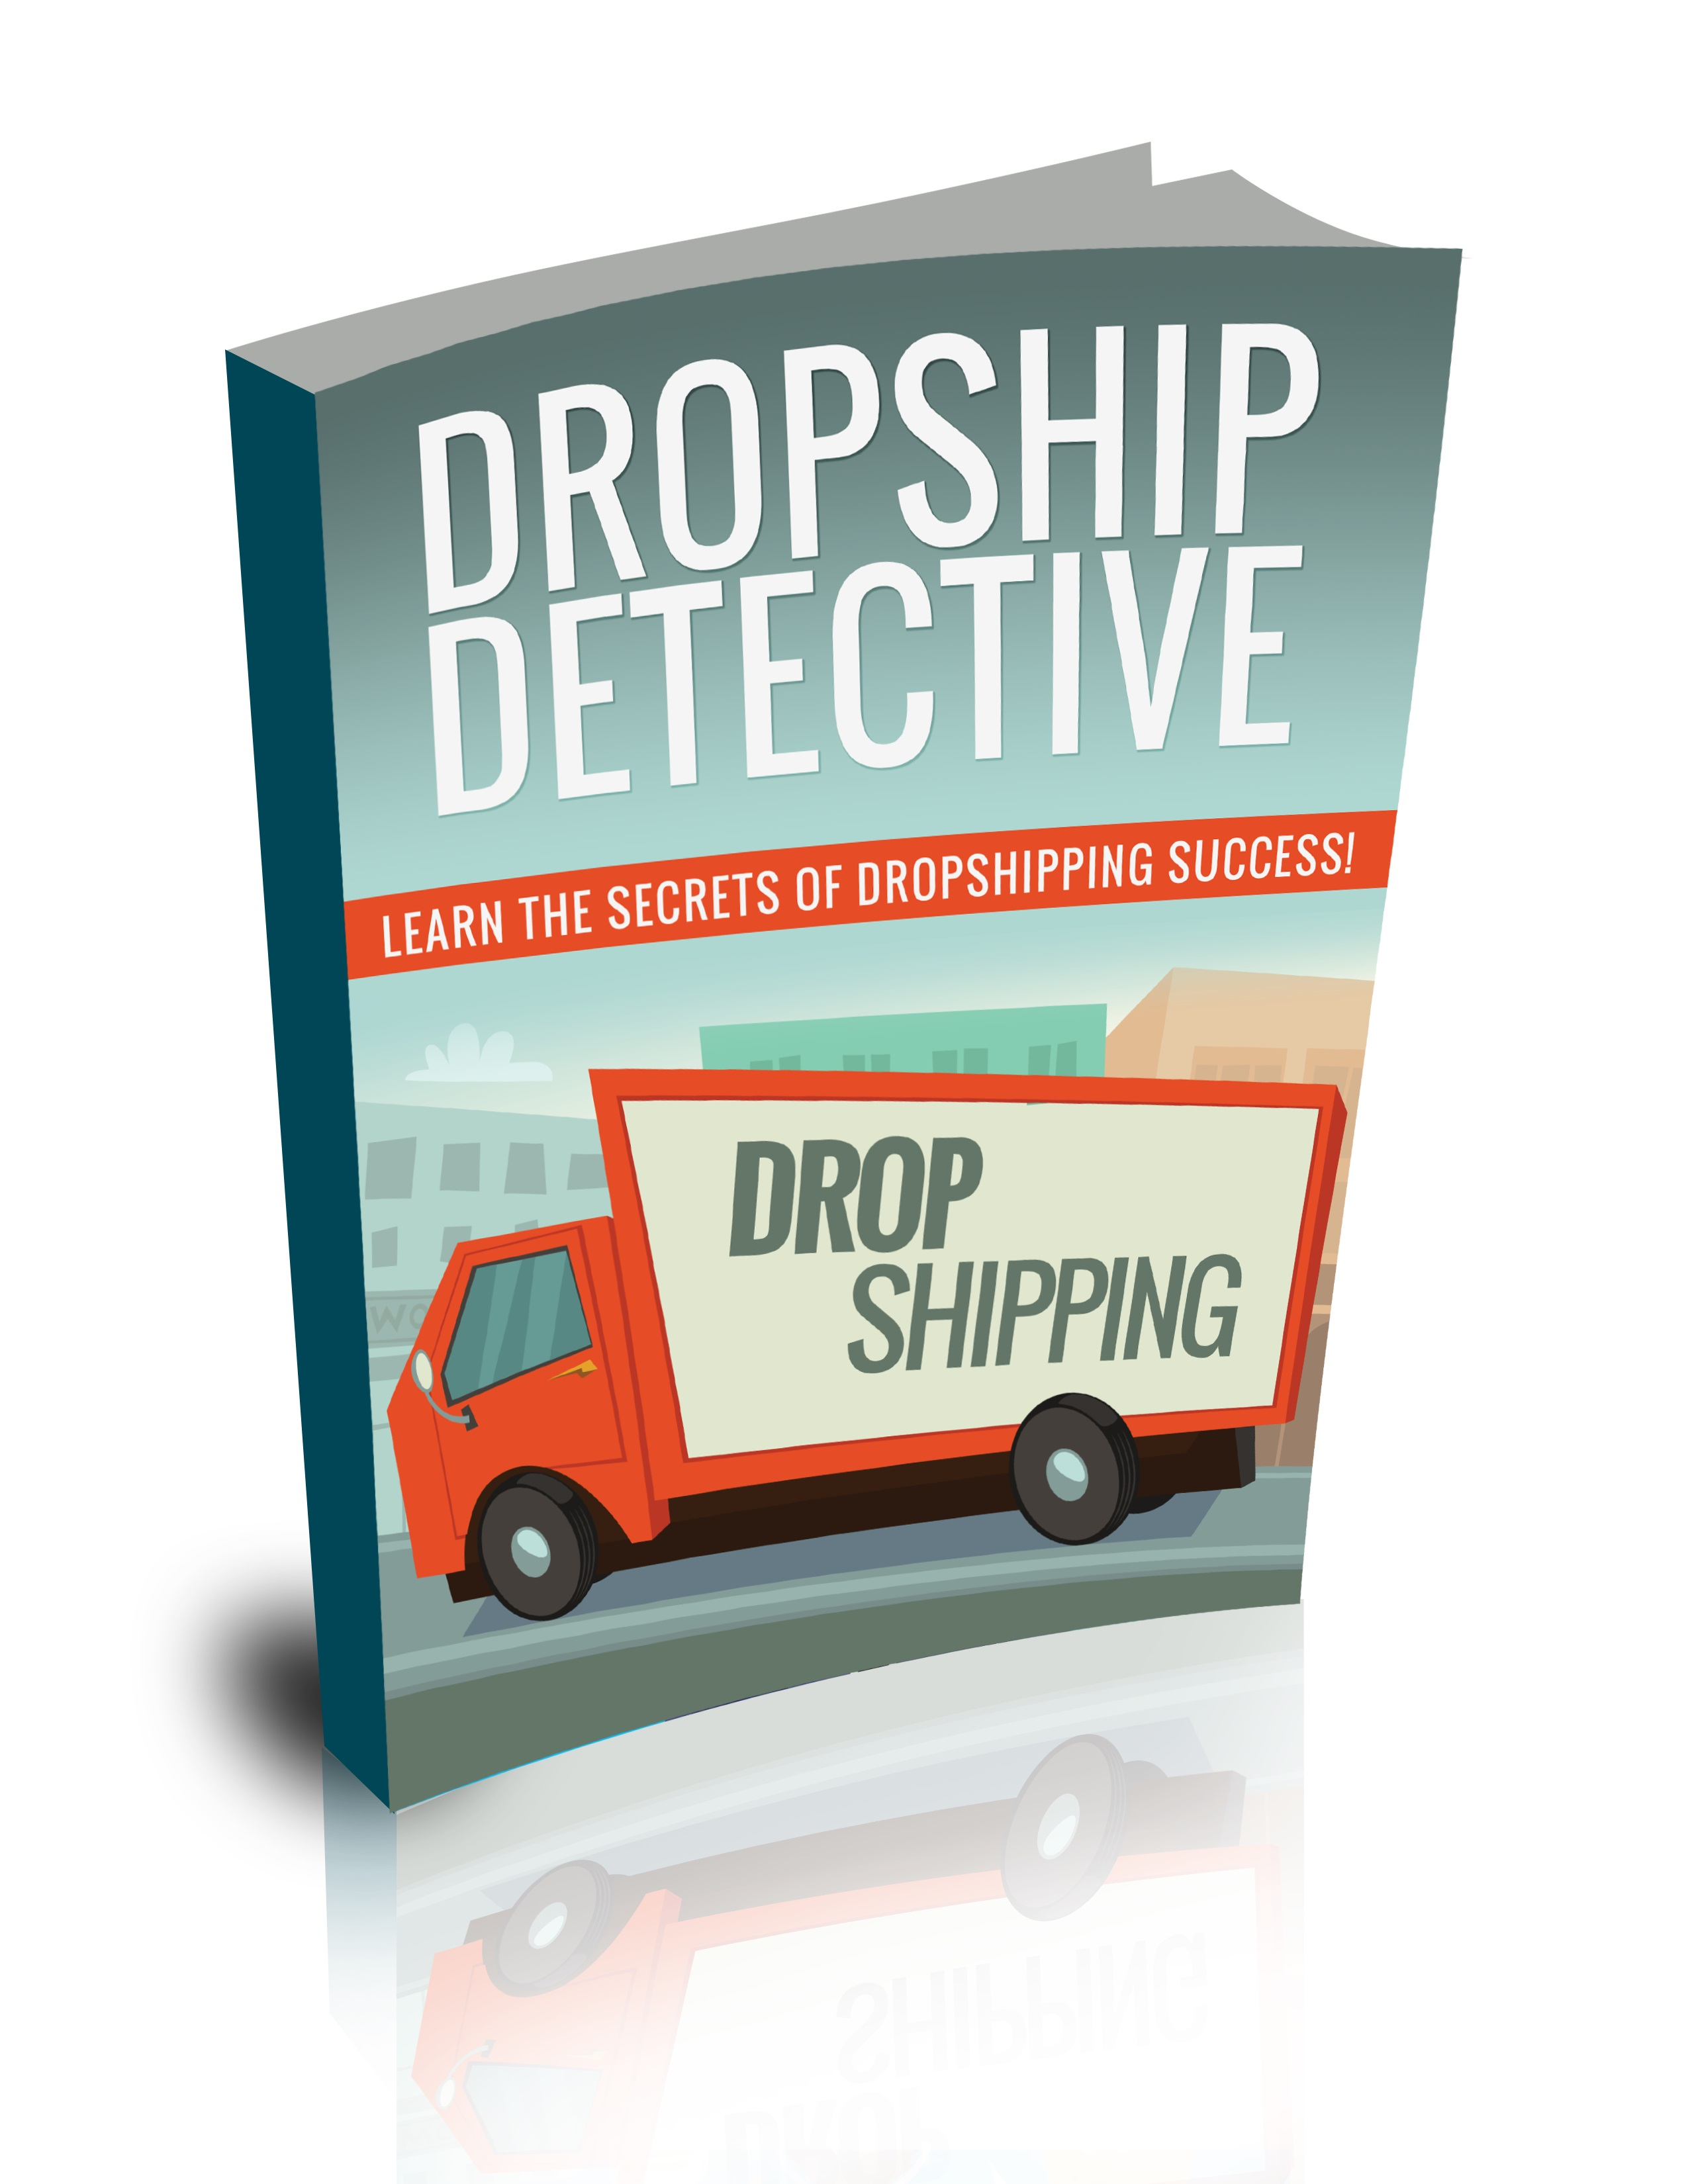 Dropship Detective Package